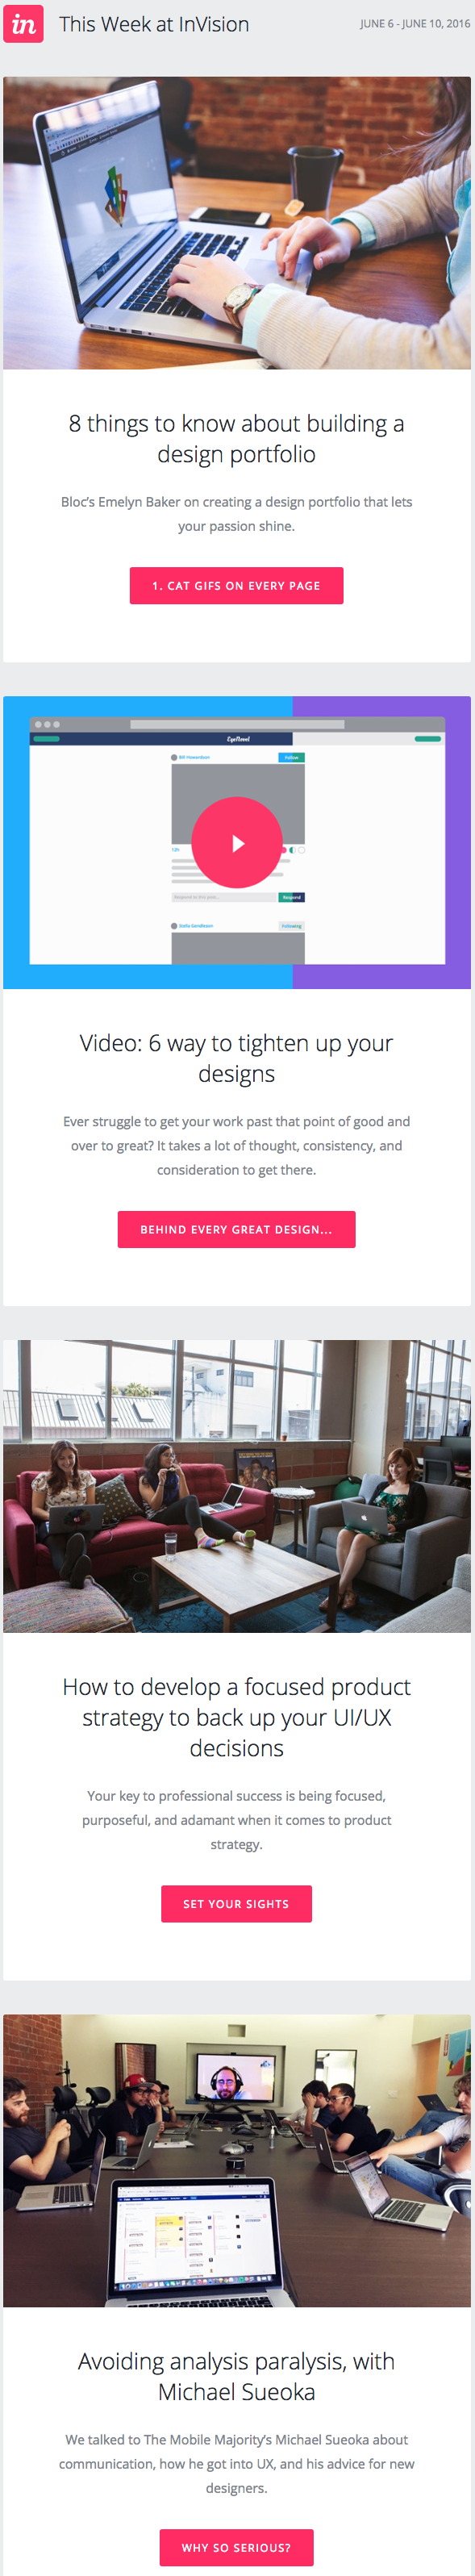 invision-newsletter-example.png